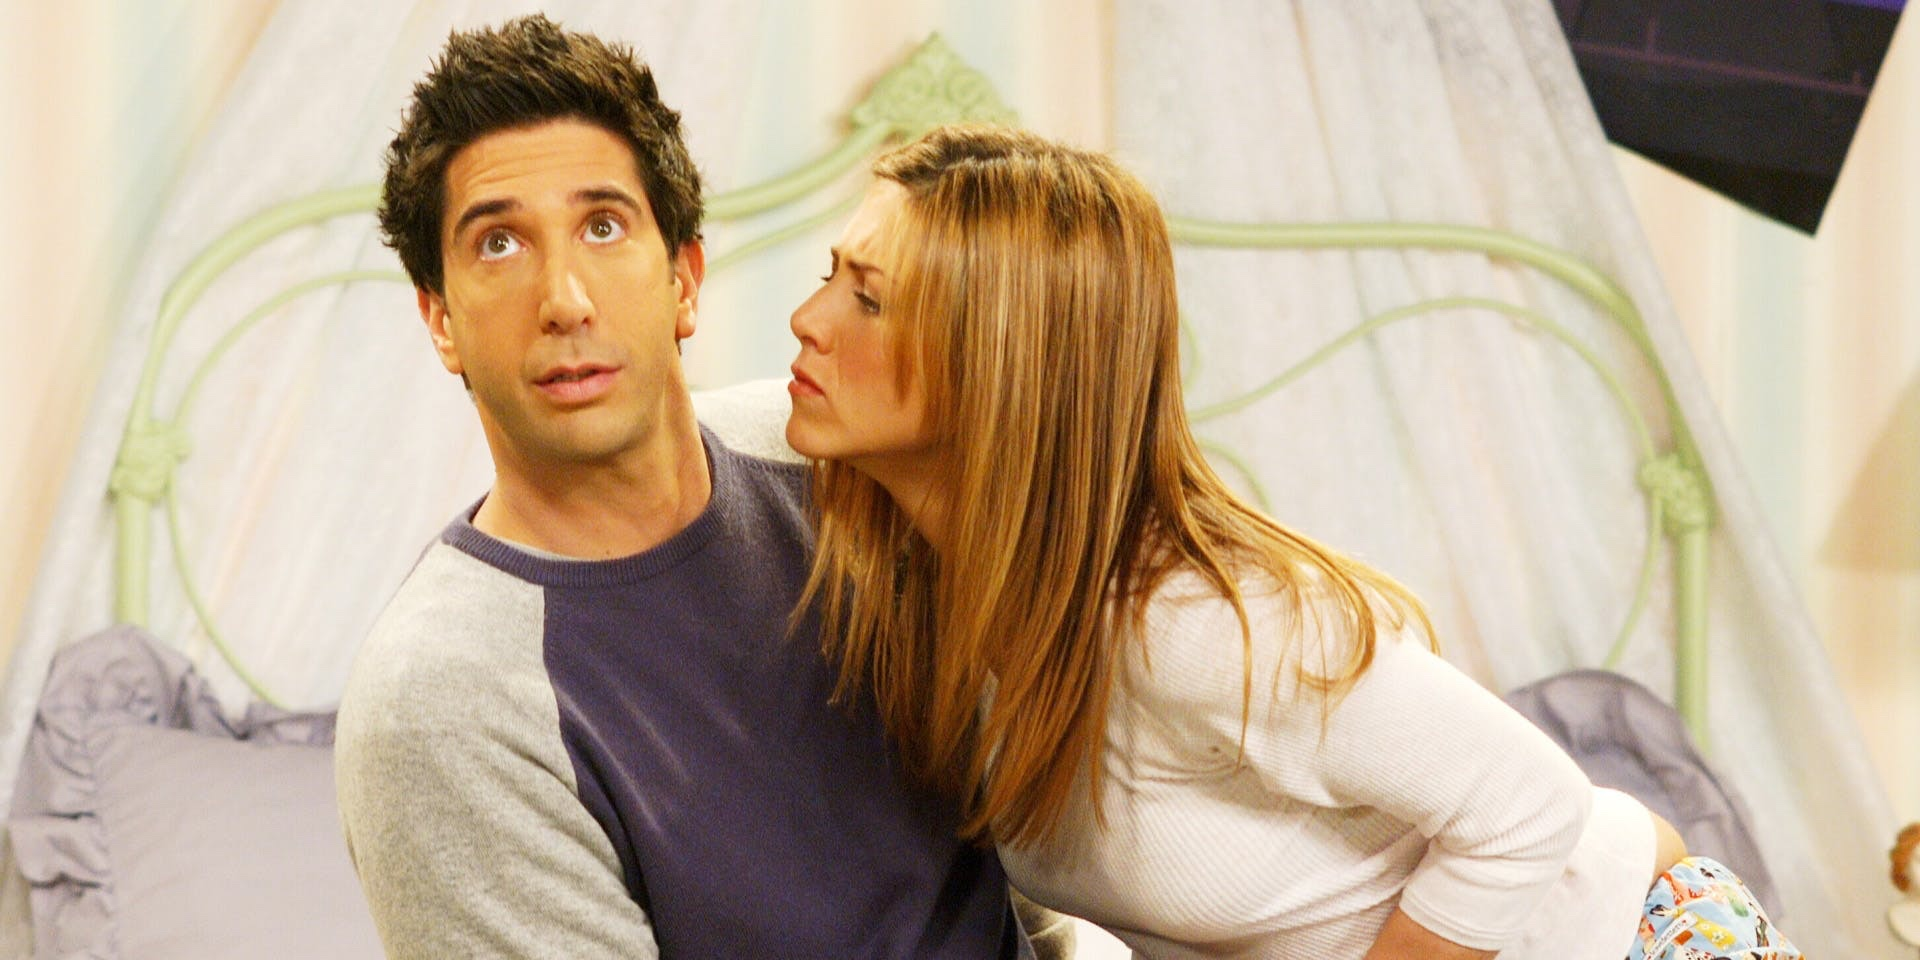 YouPorn Offers David Schwimmer $1 Million Dollars to Reenact Ross Geller in Friends Porn Parody